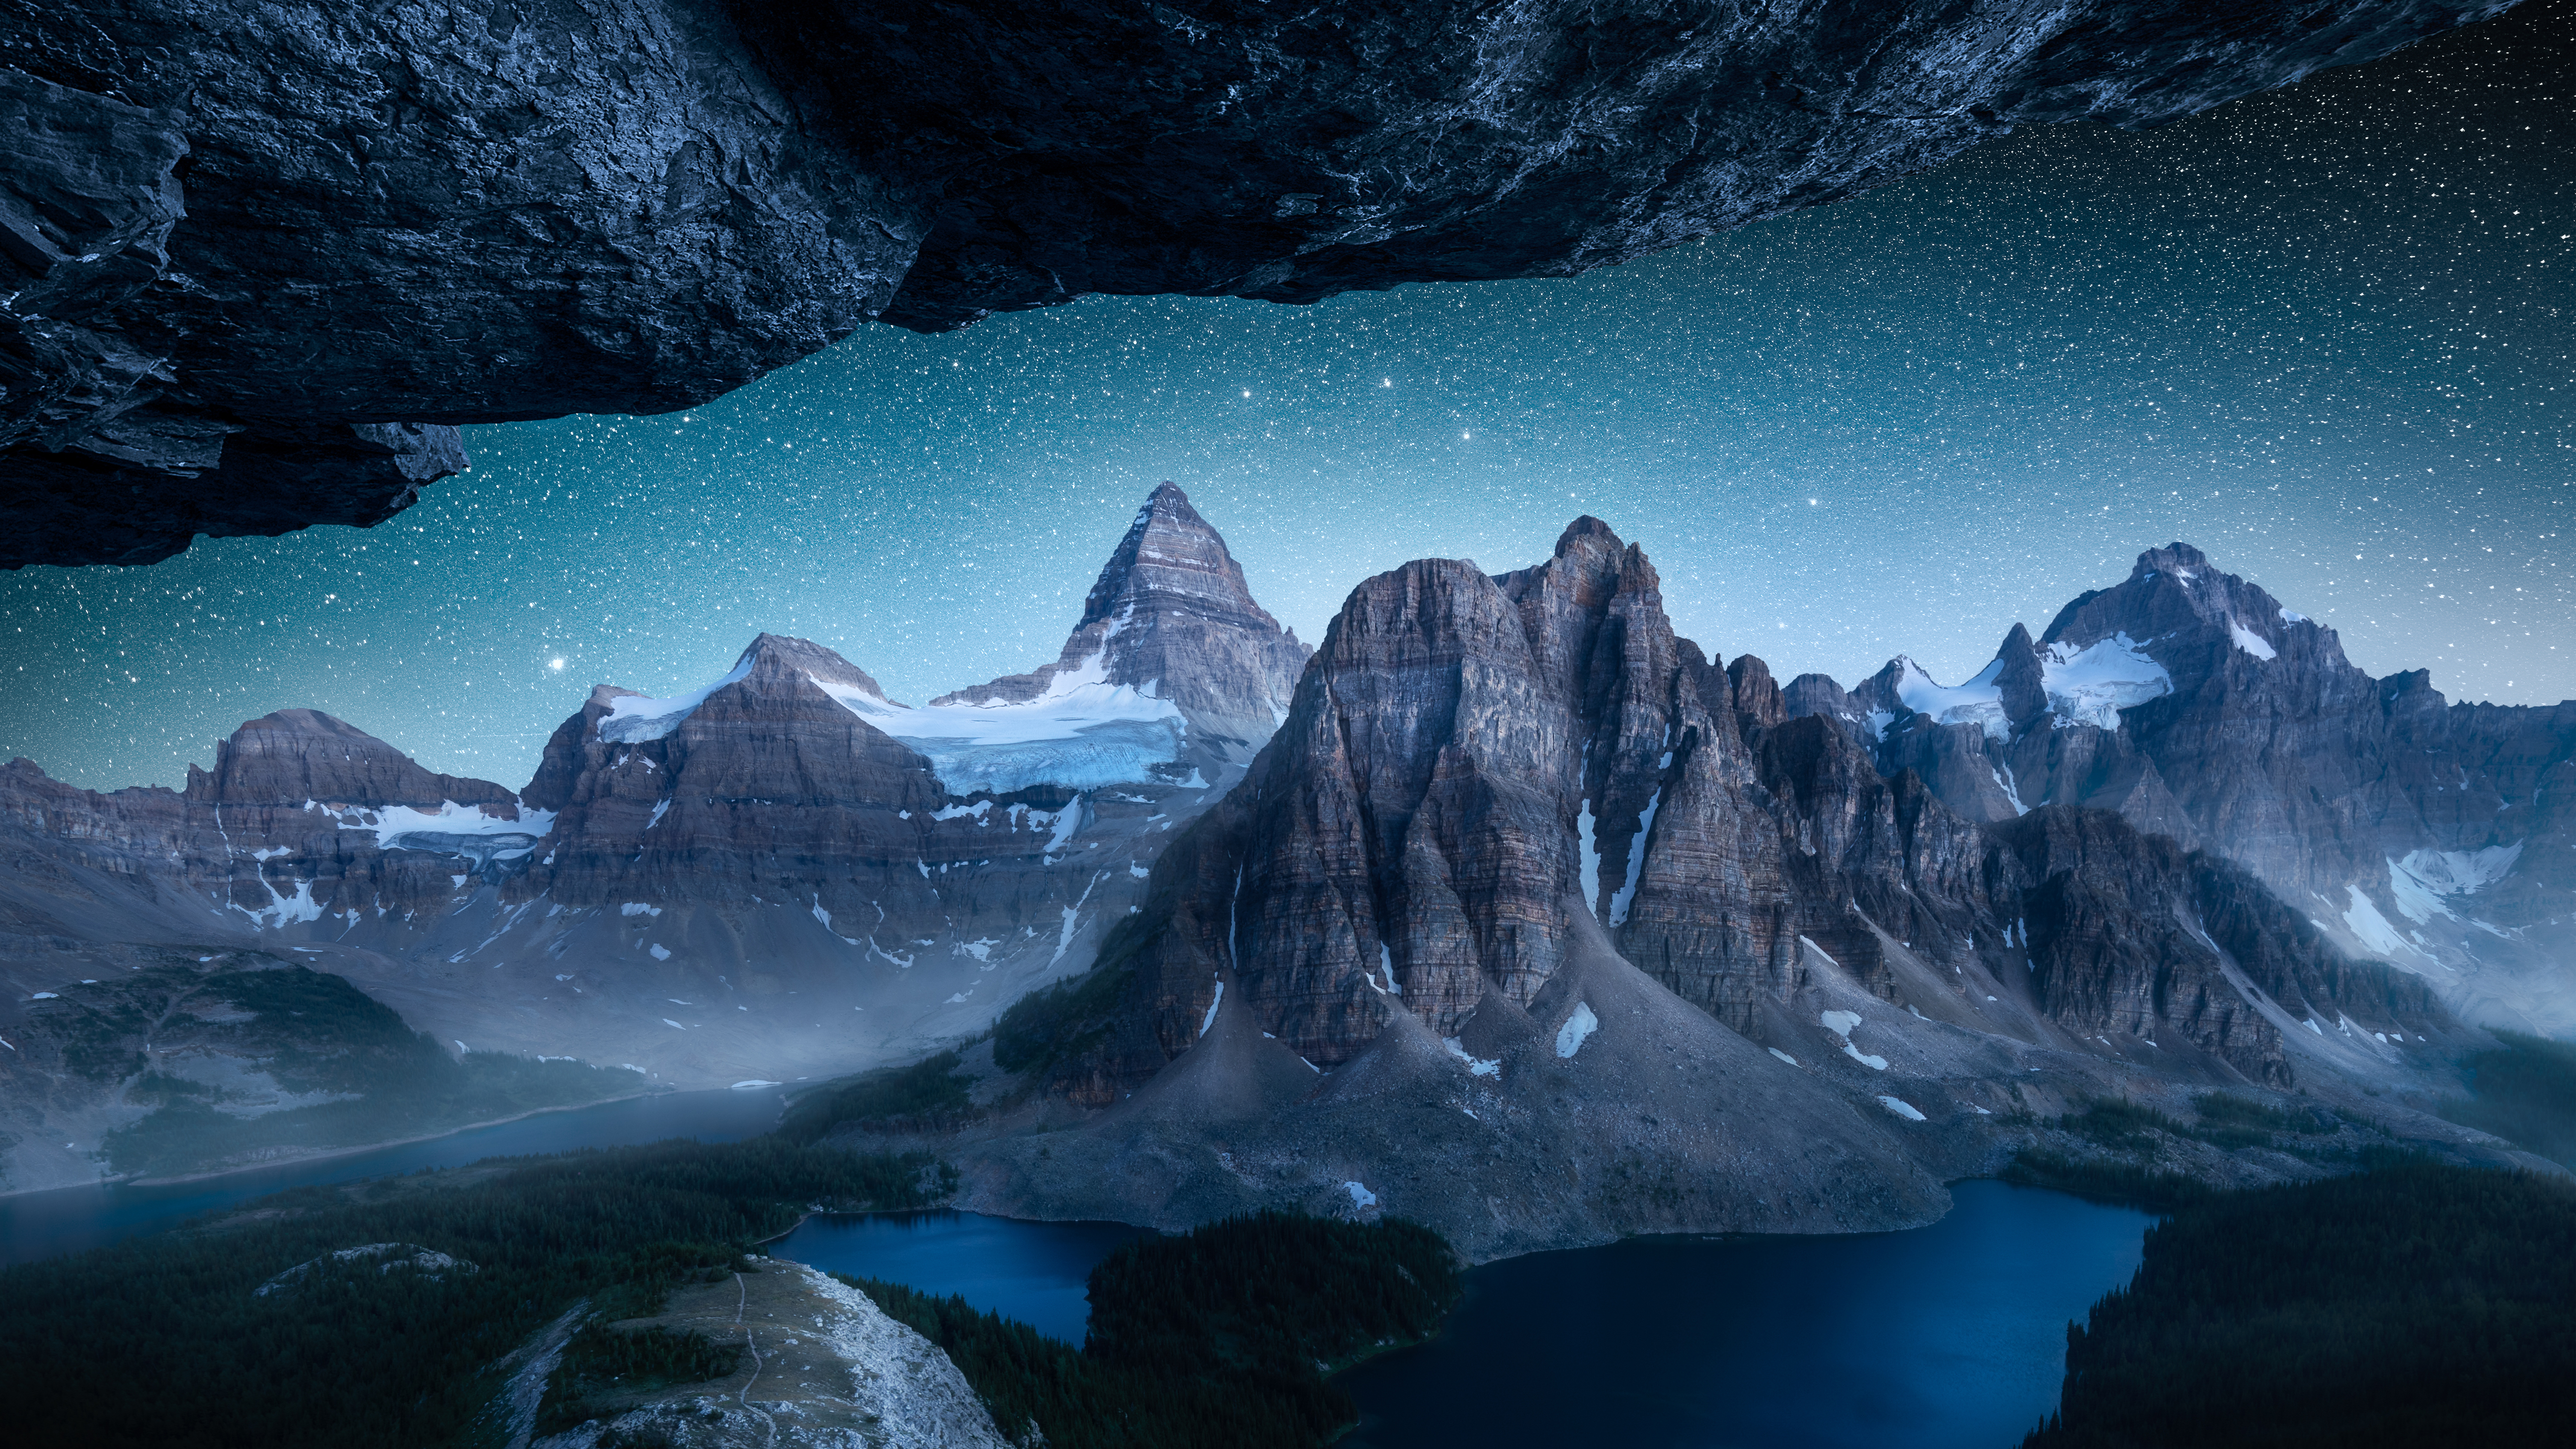 General 5120x2880 mountains night stars snow rocks landscape lake river forest trees Mount Assiniboine Canada Cath Simard